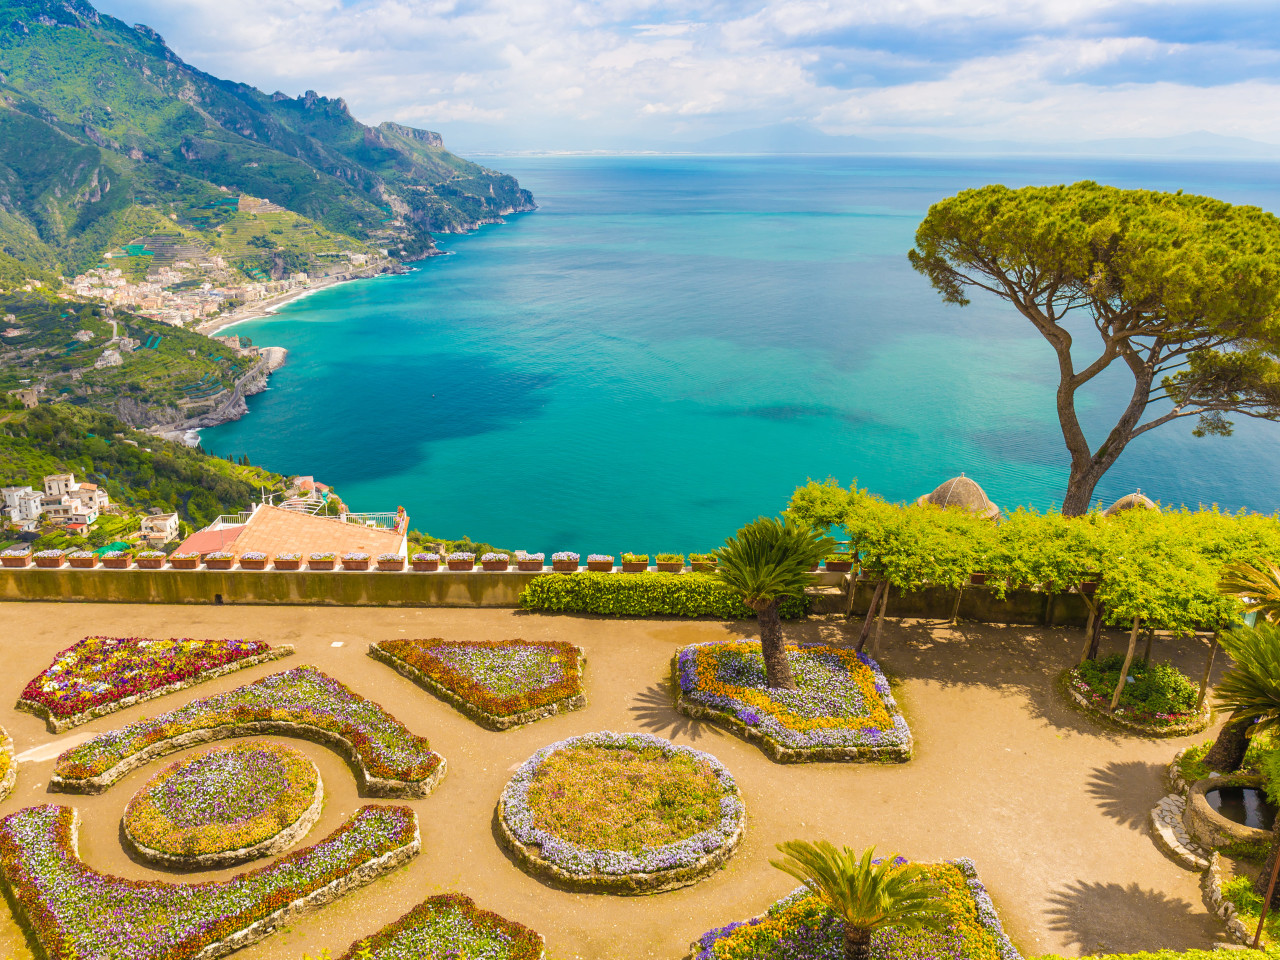 Amalfi Coast - Sharing Tour